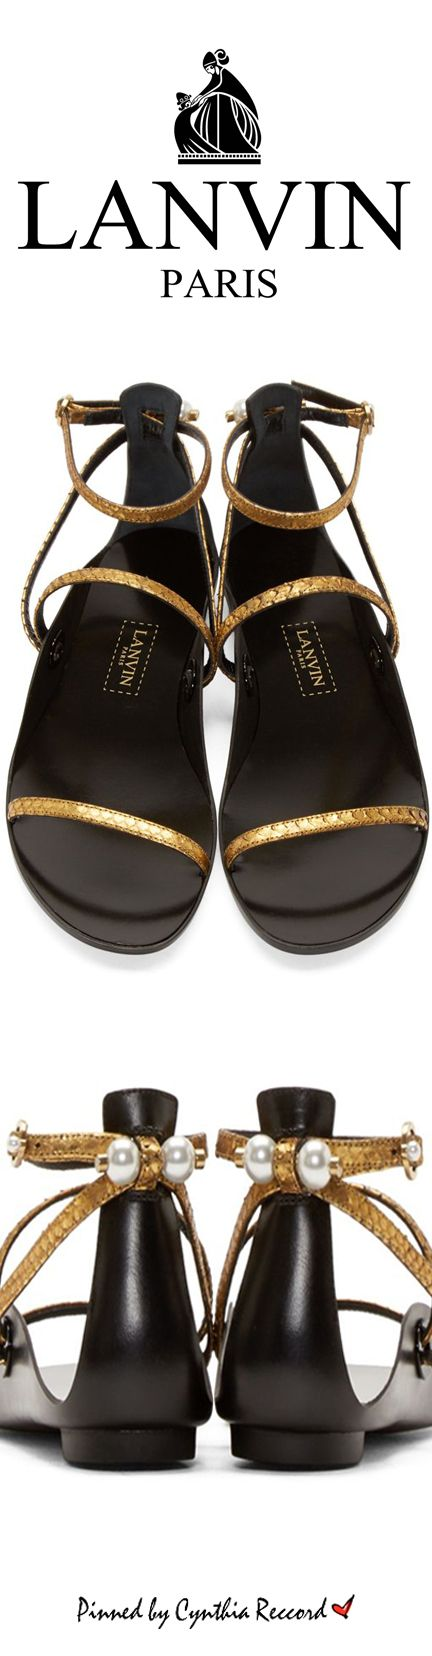 Shoes and Accessories Cynthia Reccord